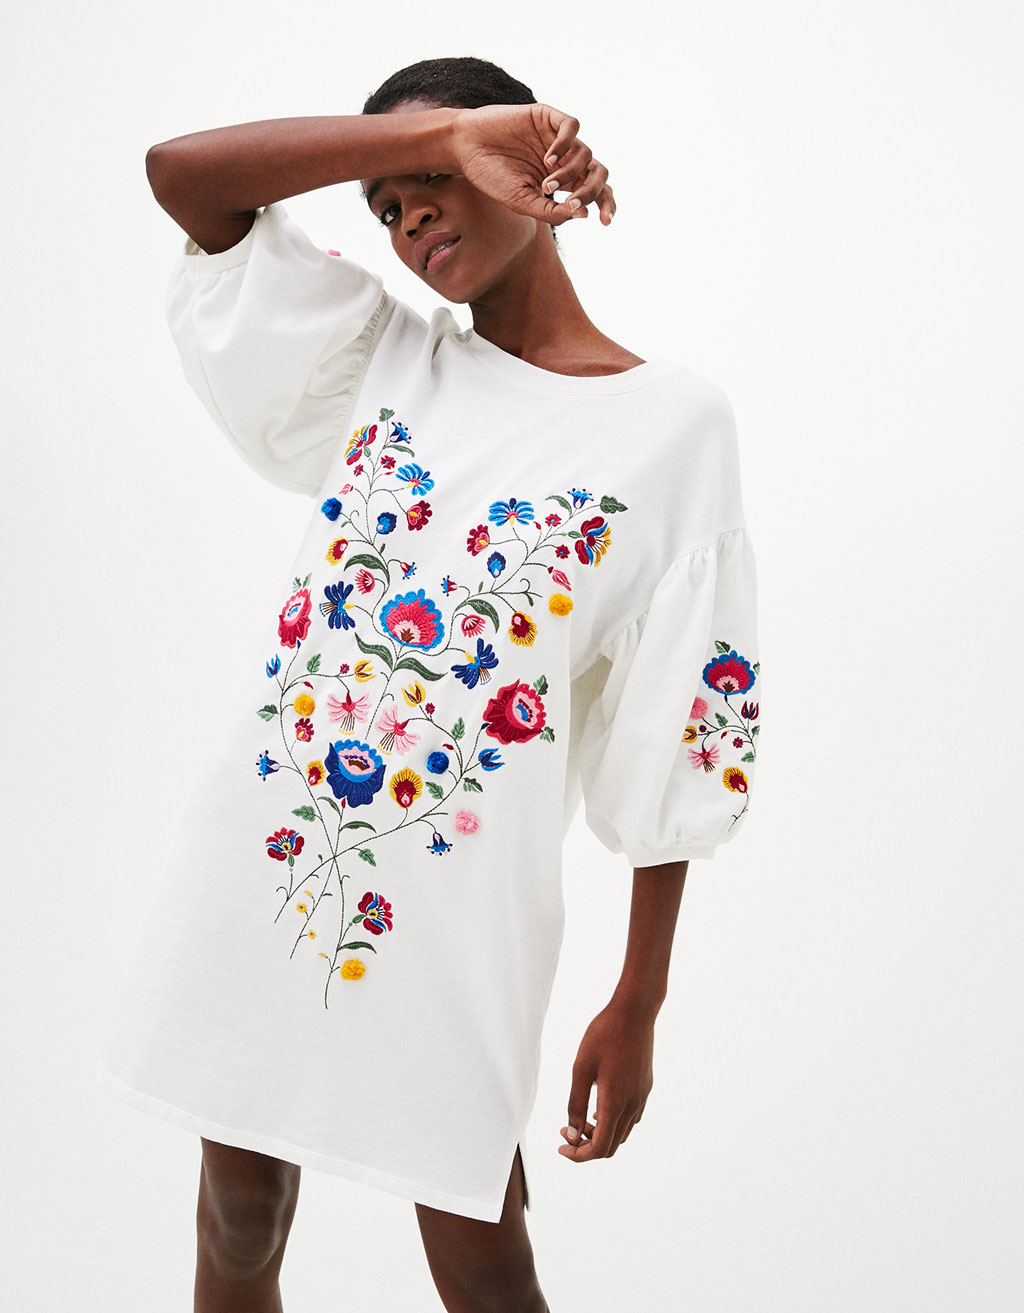 Long full-sleeved sweatshirt with embroidered flowers